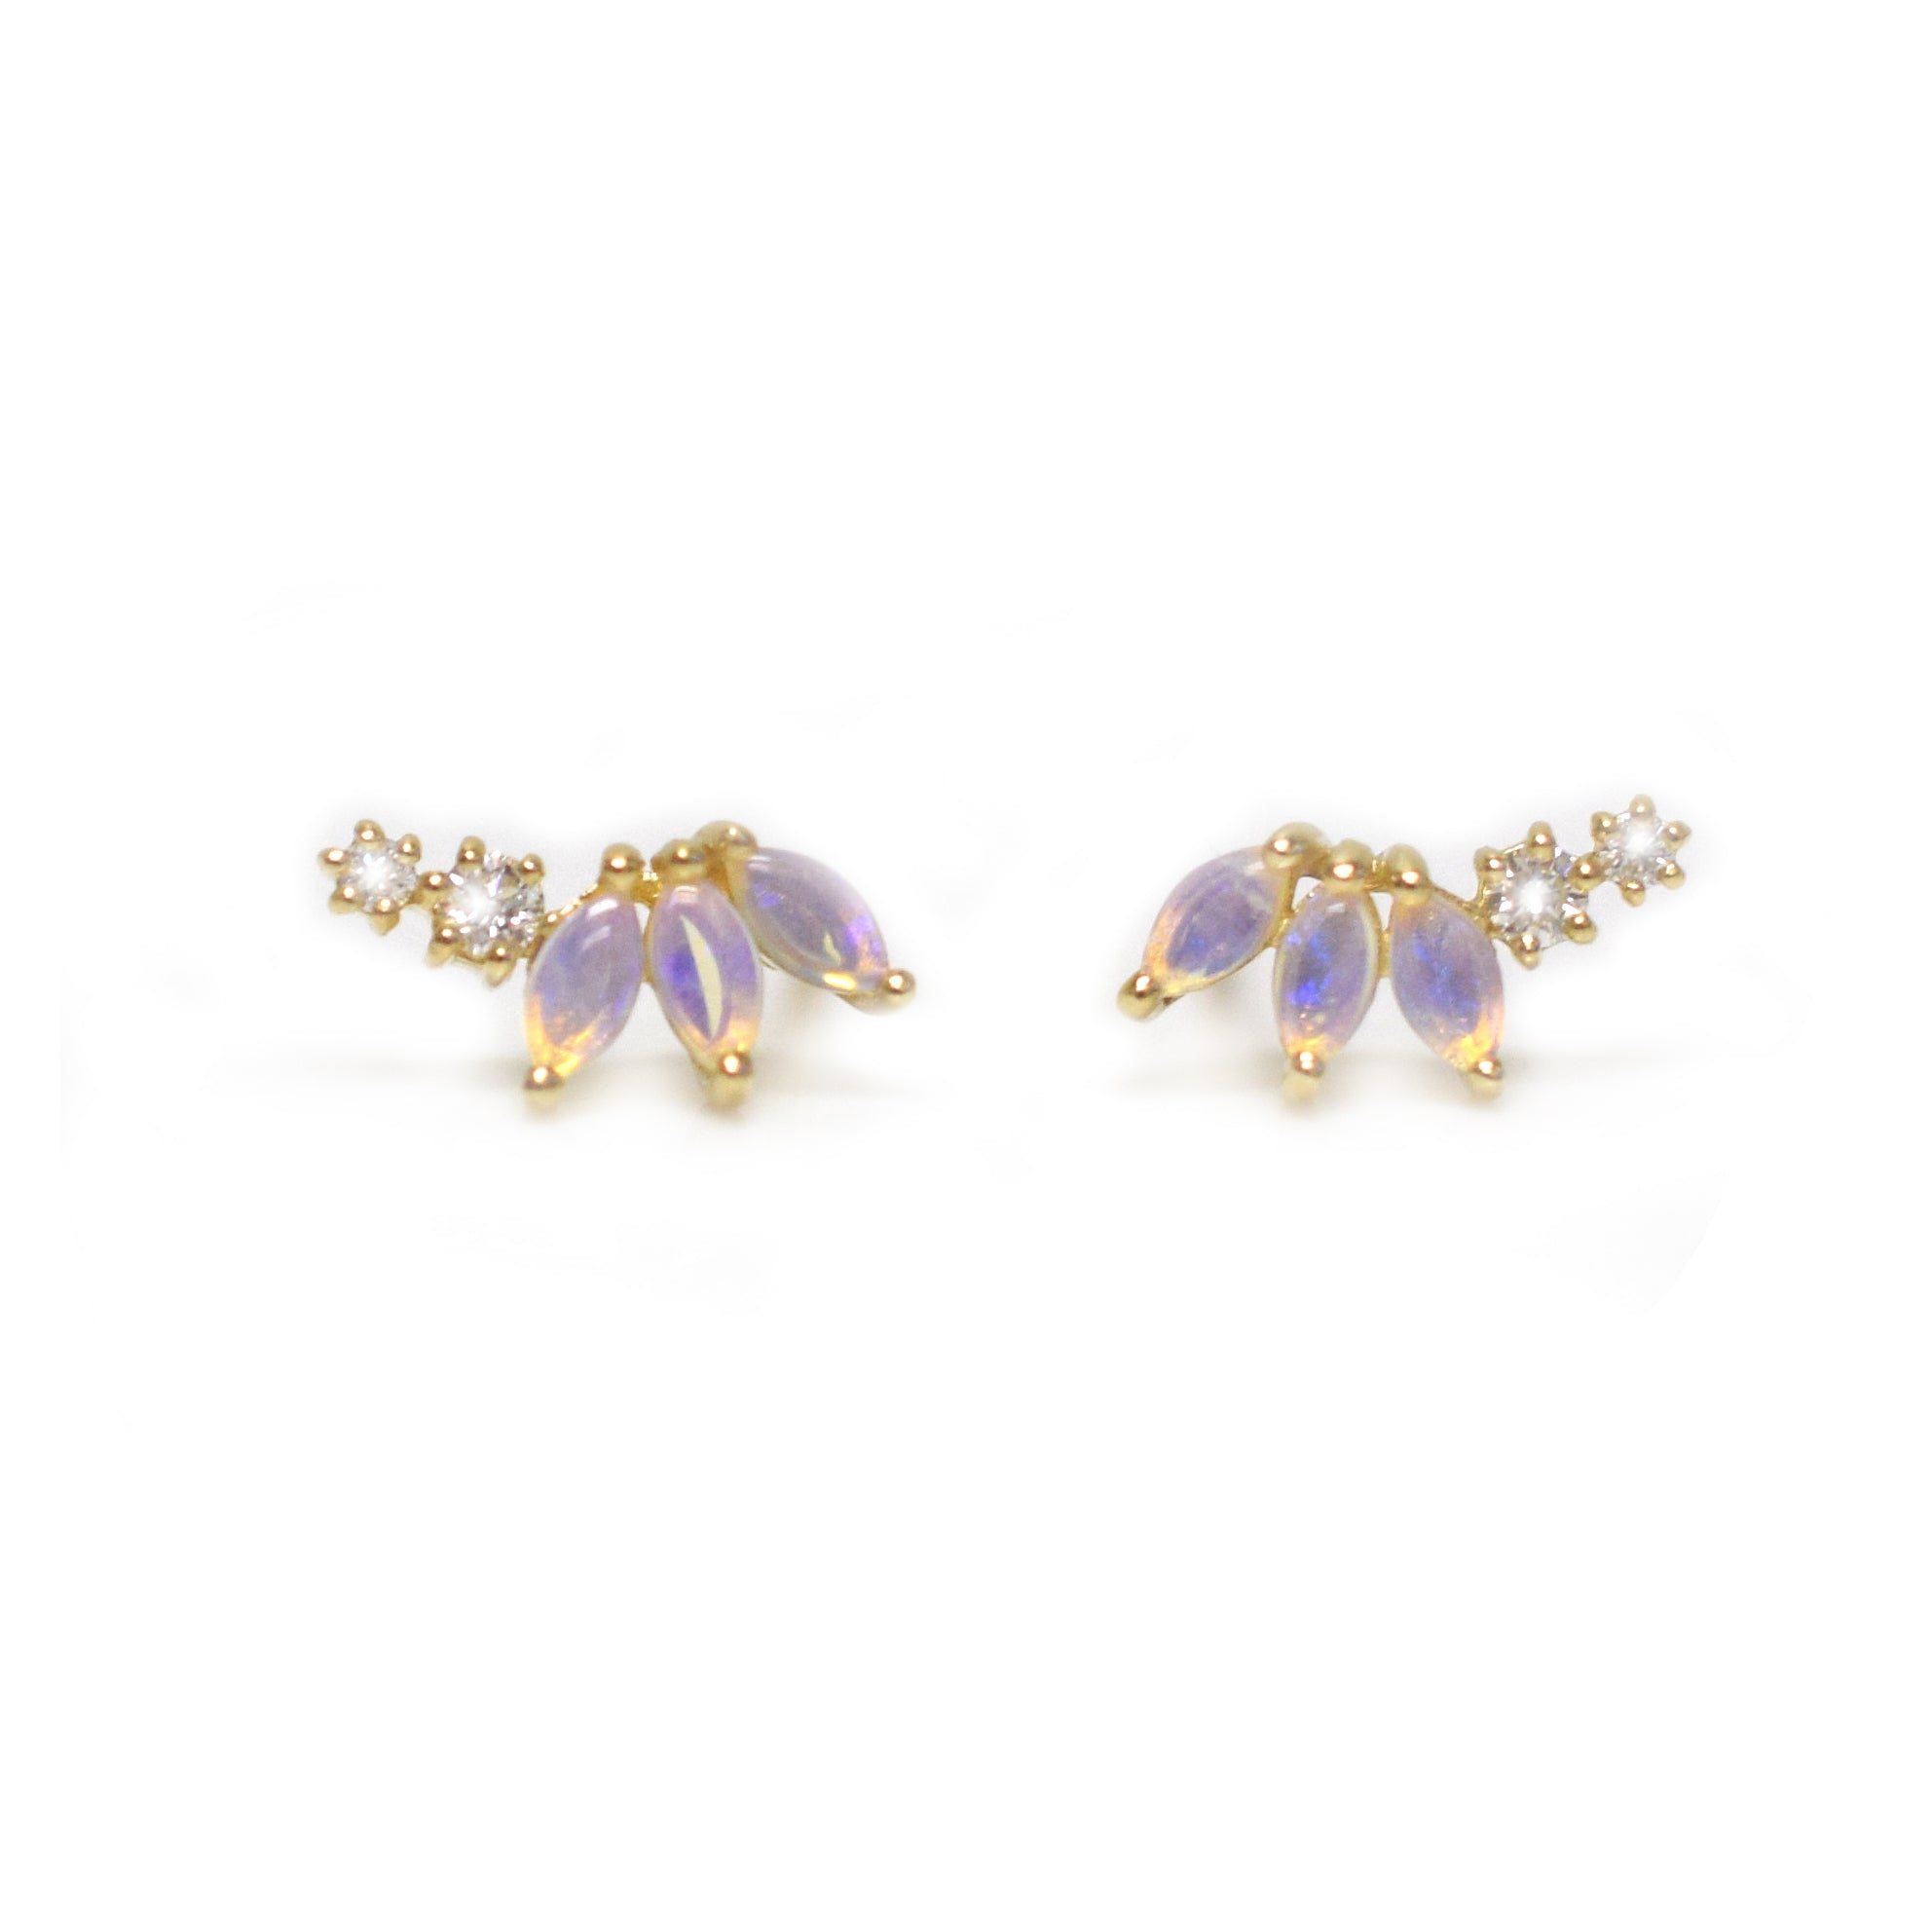 10kt Gold Opal & Diamond Twinkling Lotus Studs